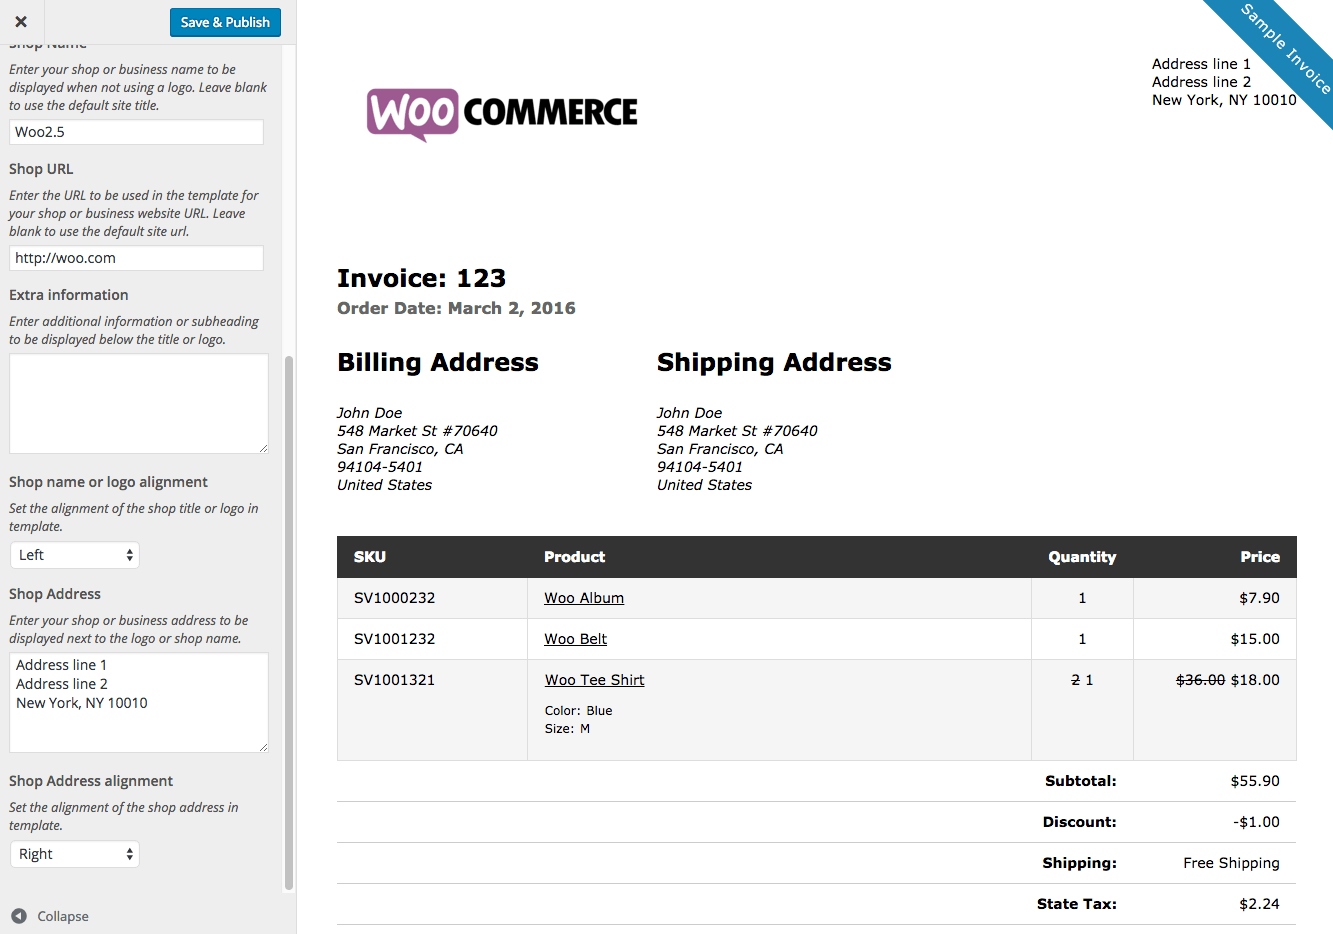 Aaaaeroincus  Marvellous Woocommerce Print Invoices Amp Packing Lists  Woocommerce Docs With Exquisite Woocommerce Print Invoices  Packing Lists Customizer With Beautiful International Invoice Also How To Email Invoices From Quickbooks In Addition Paper Invoices And Paypal Invoice Number As Well As Invoice Finance Facility Additionally Invoice Freelance From Docswoocommercecom With Aaaaeroincus  Exquisite Woocommerce Print Invoices Amp Packing Lists  Woocommerce Docs With Beautiful Woocommerce Print Invoices  Packing Lists Customizer And Marvellous International Invoice Also How To Email Invoices From Quickbooks In Addition Paper Invoices From Docswoocommercecom